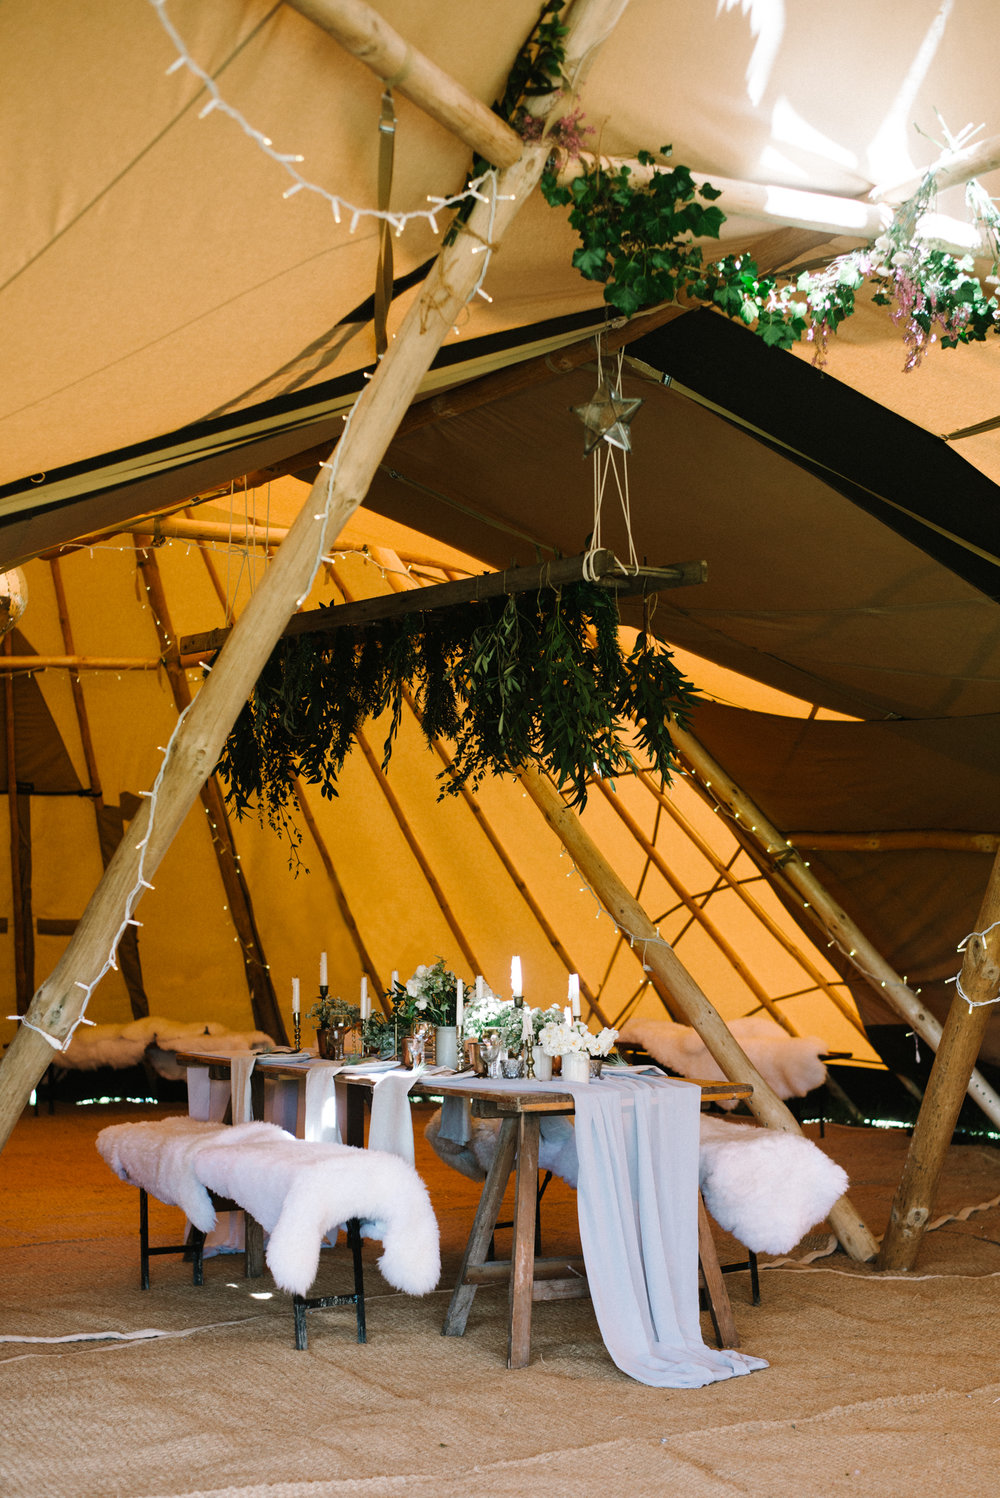 INTIMATE AND ADVENTUROUS TIPI WEDDING INSPIRATION IN CORNWALL // Click to see more Images //Olivia Bossert Photography // www.oliviabossert.com